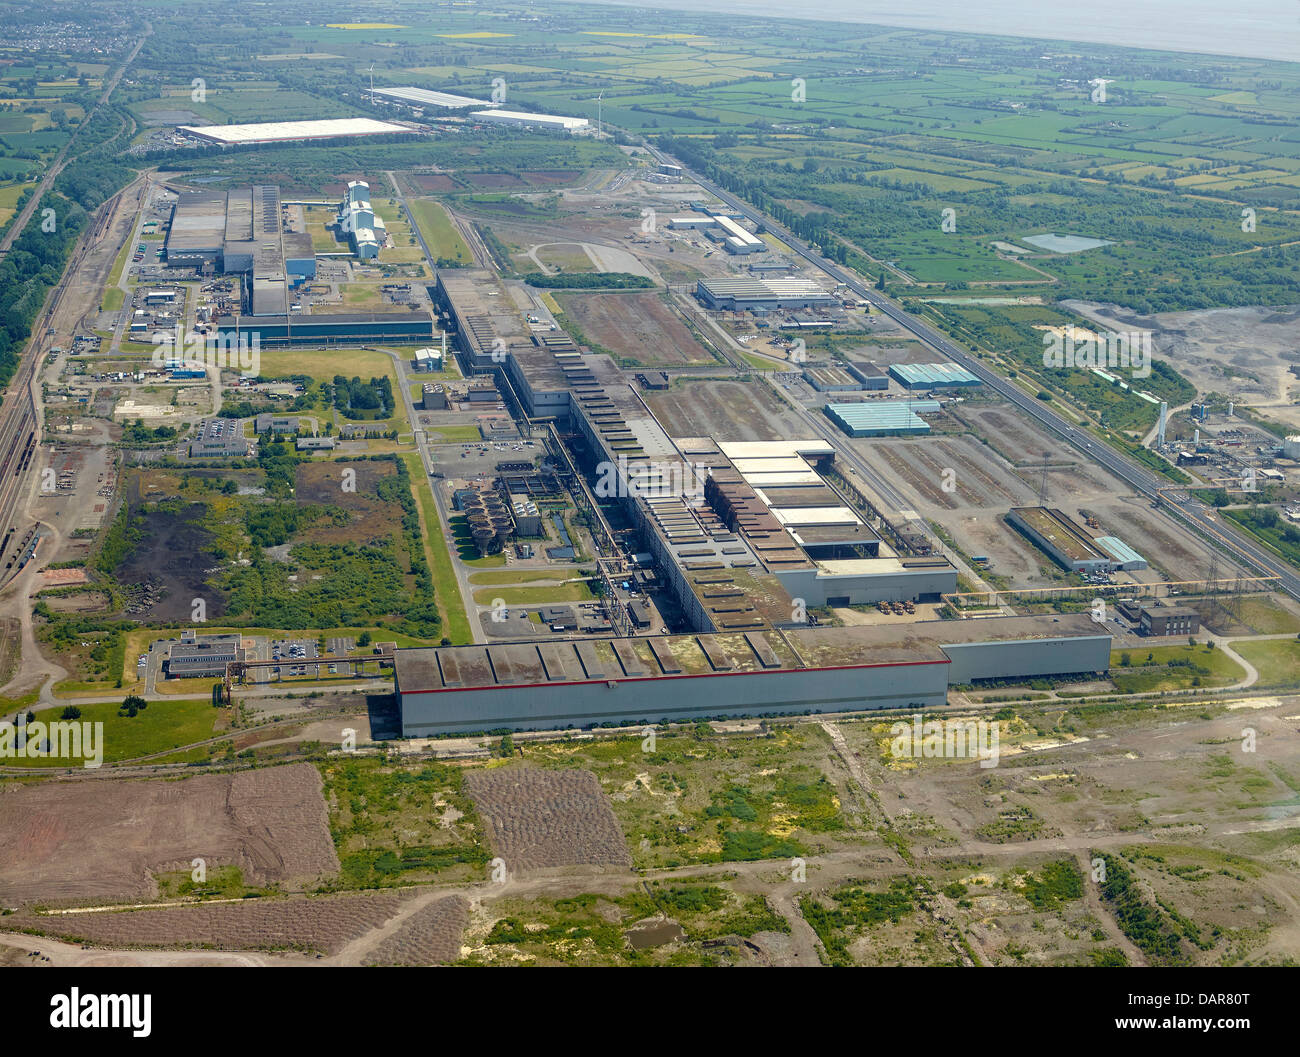 Llanwern Steelworks, Newport South Wales, UK - Stock Image